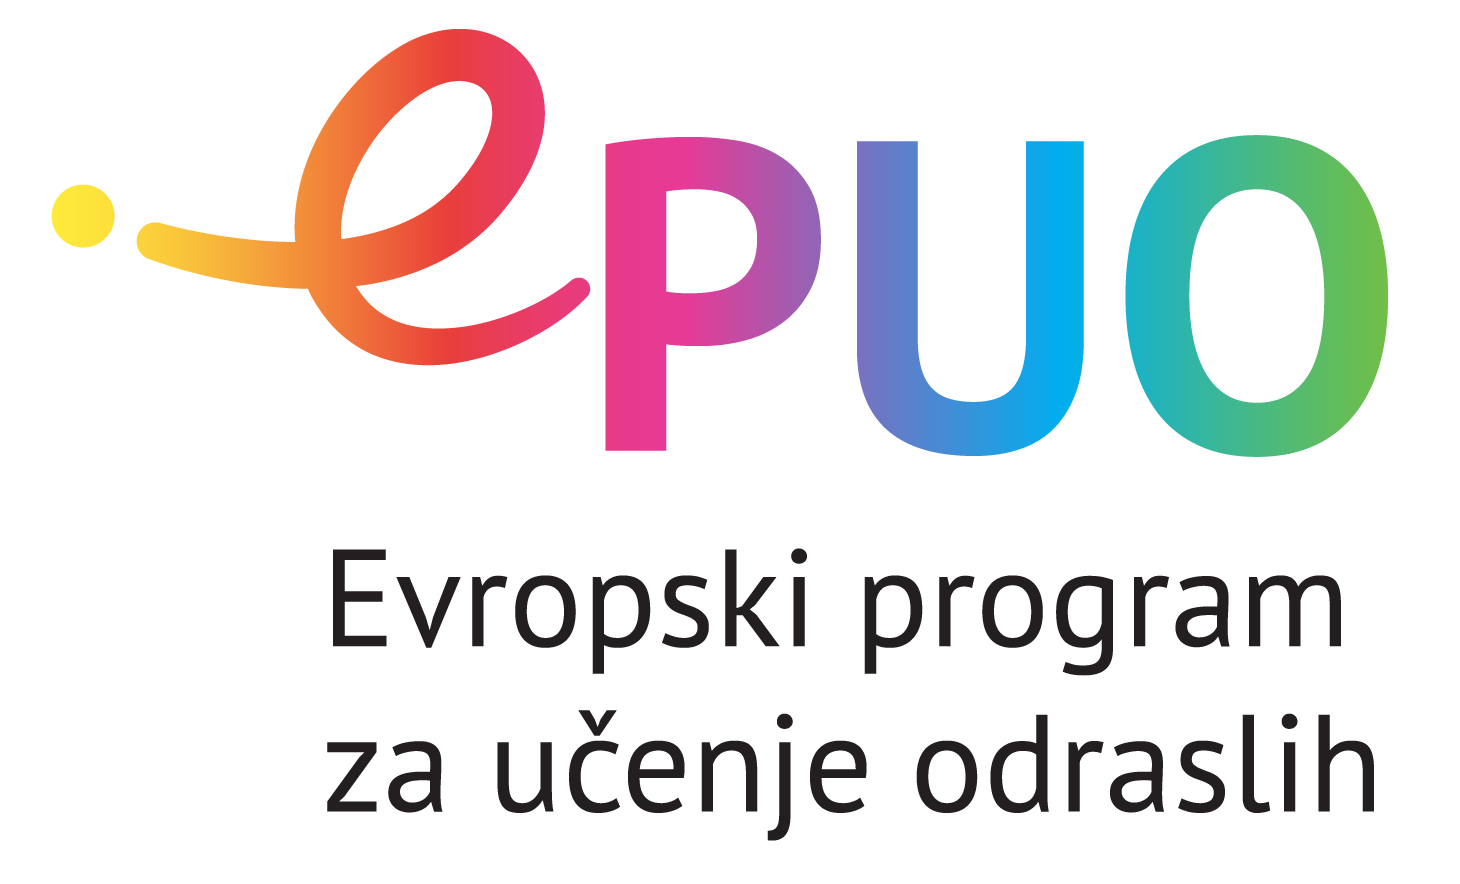 EPUO.png (1460×884)